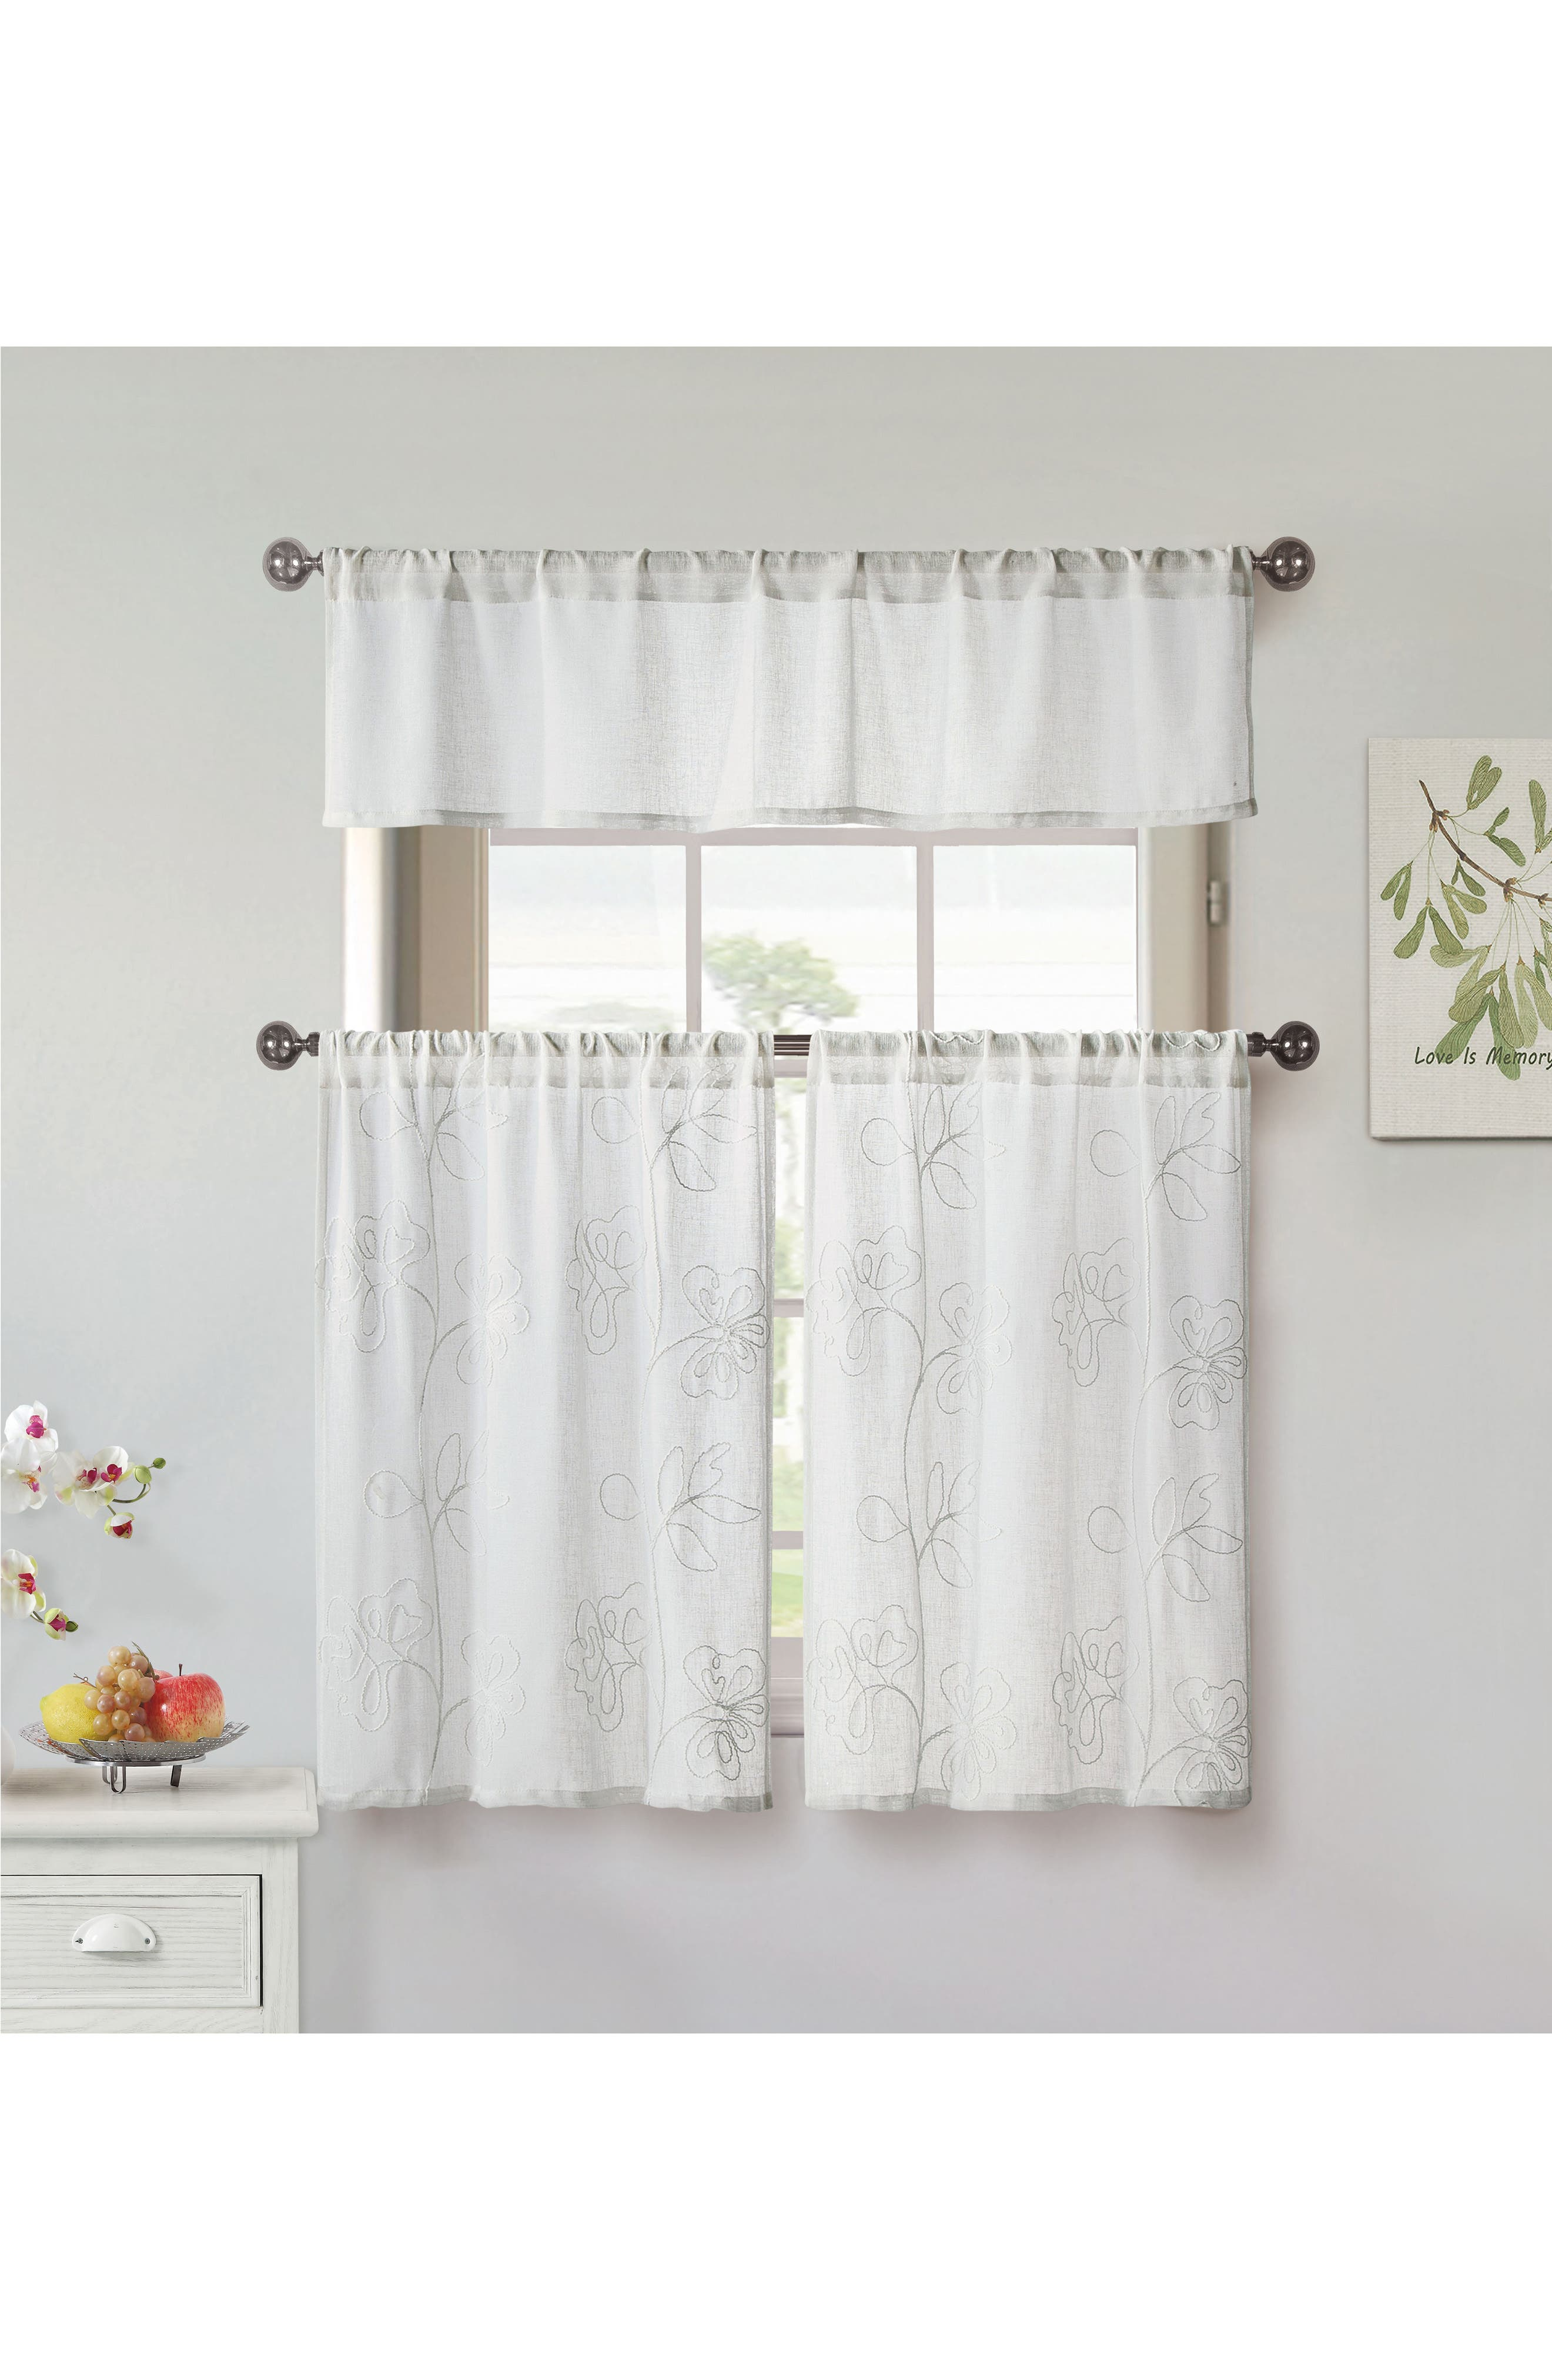 Duck River Textile Katness Set of 3 Tiered Small Pole Top Window Panels